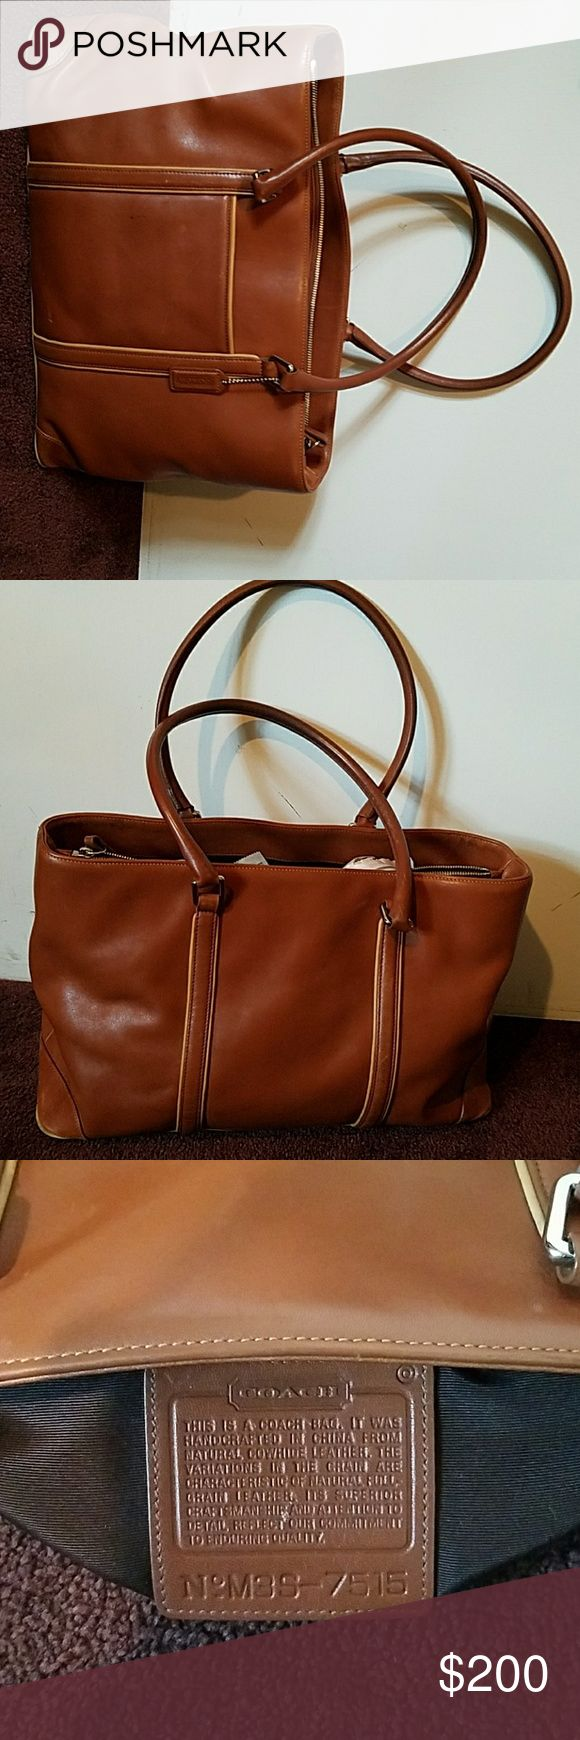 """AUTHENTIC Vintage Coach Briefcase in excellent used condition.  3 large compartments.. zippered compartment in the middle and phone compartment on the outside of the bag. Feet on the bottom.  Really nice briefcase/handbag/tote....actual color is more of a Camel with light trim..Beautiful Bag... comes with dust bag. dimensions are 16""""x6""""x10""""... Coach Bags Totes"""